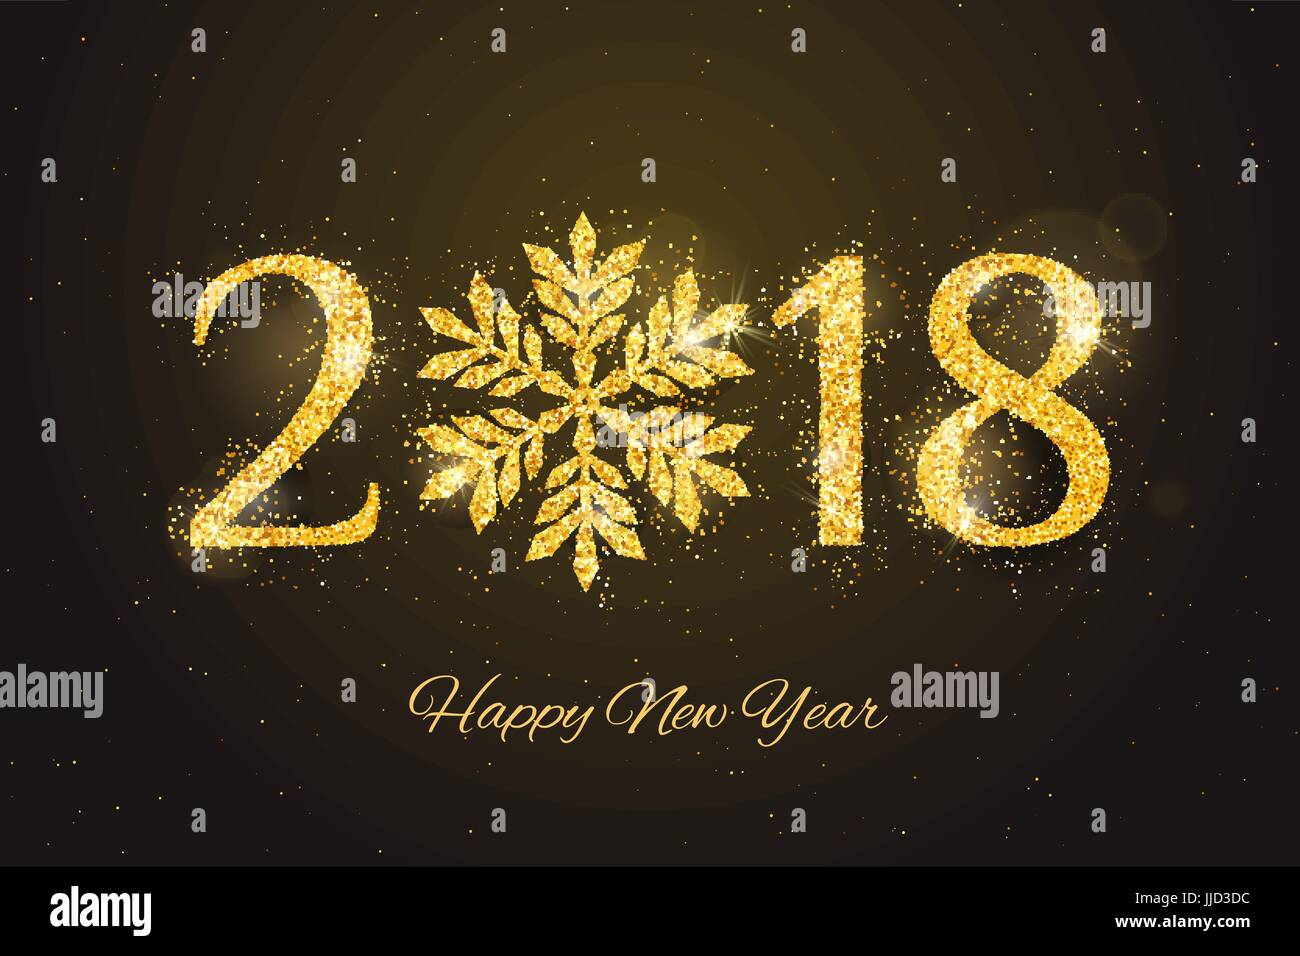 vector 2018 happy new year and merry christmas greeting card with sparkling glitter golden textured snowflake seasonal holidays background